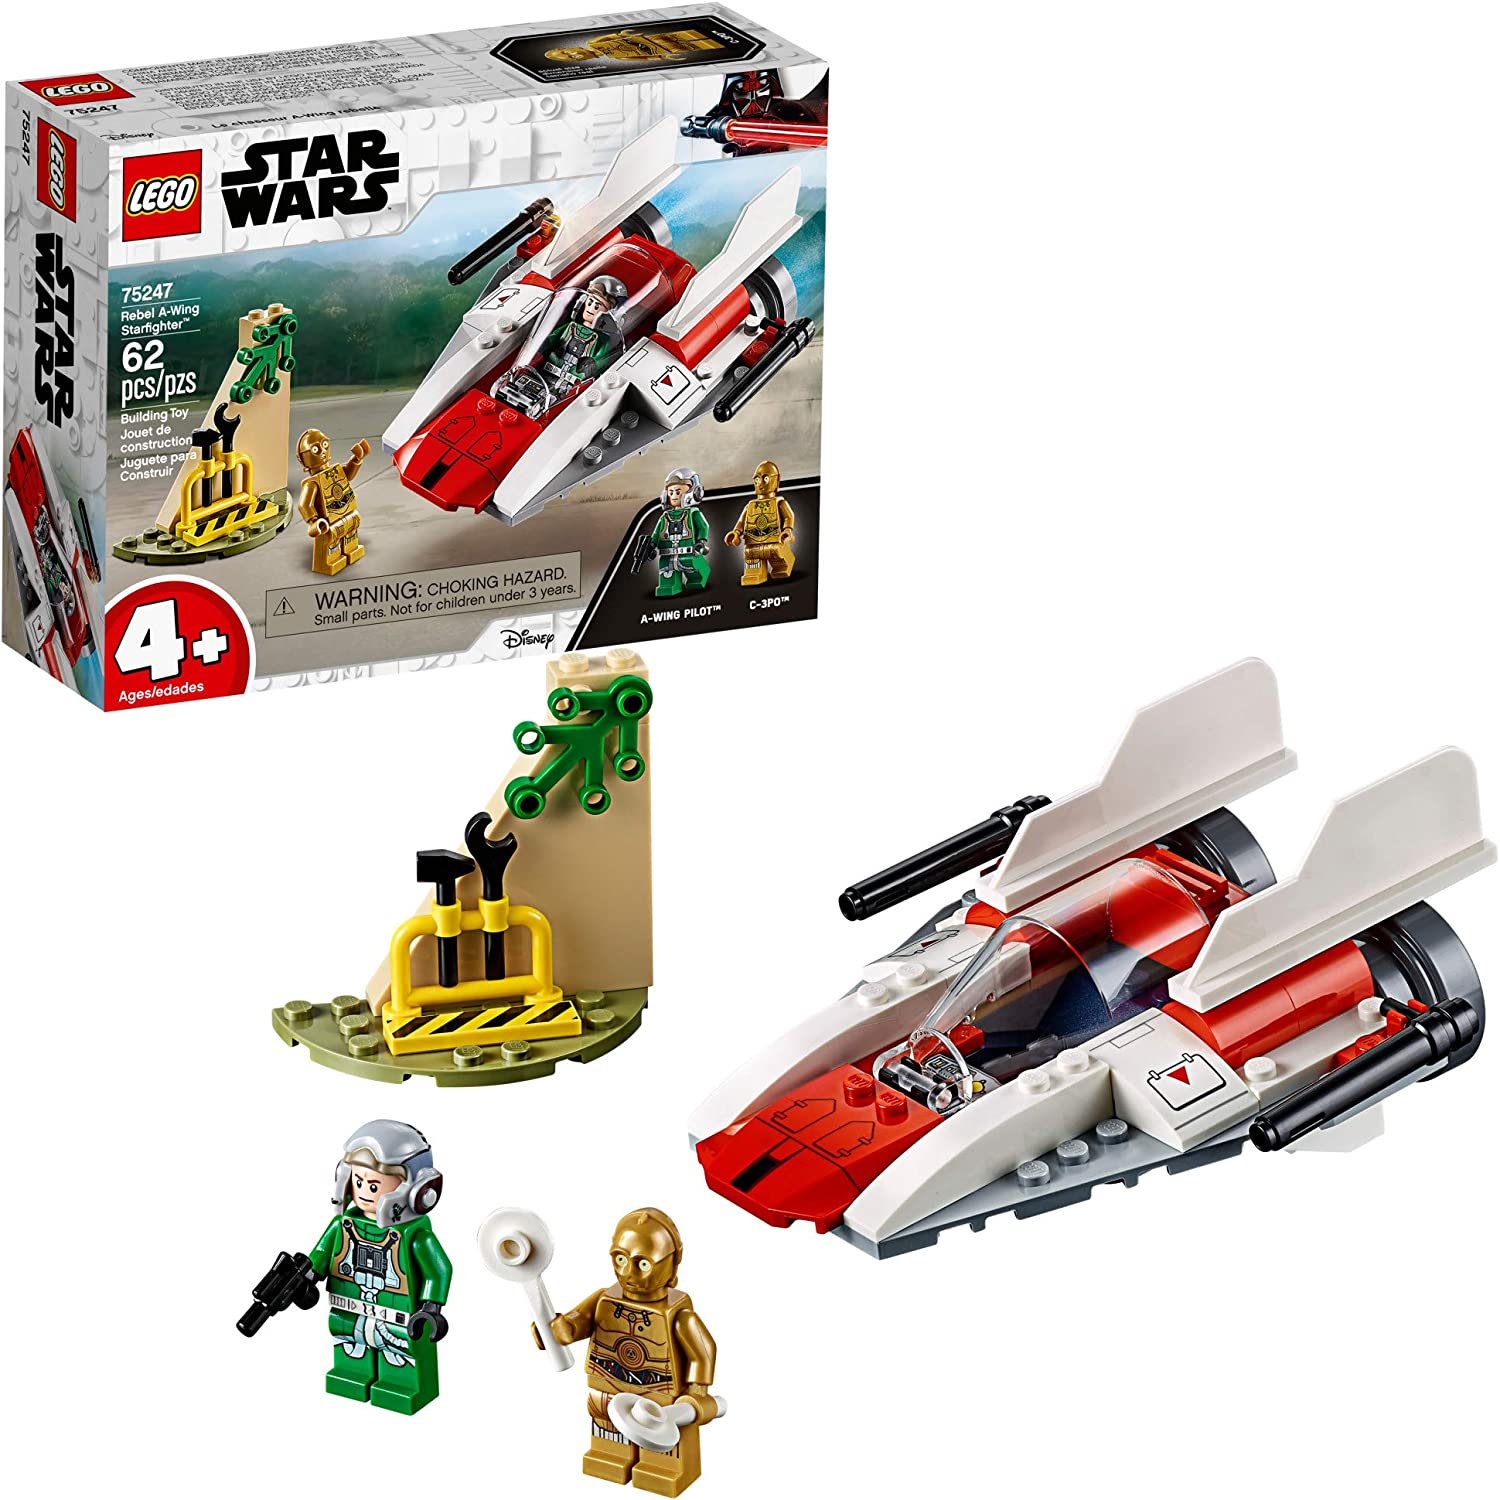 Amazon Com Lego Star Wars Rebel A Wing Starfighter 75247 4 Building Kit 62 Pieces Toys Games